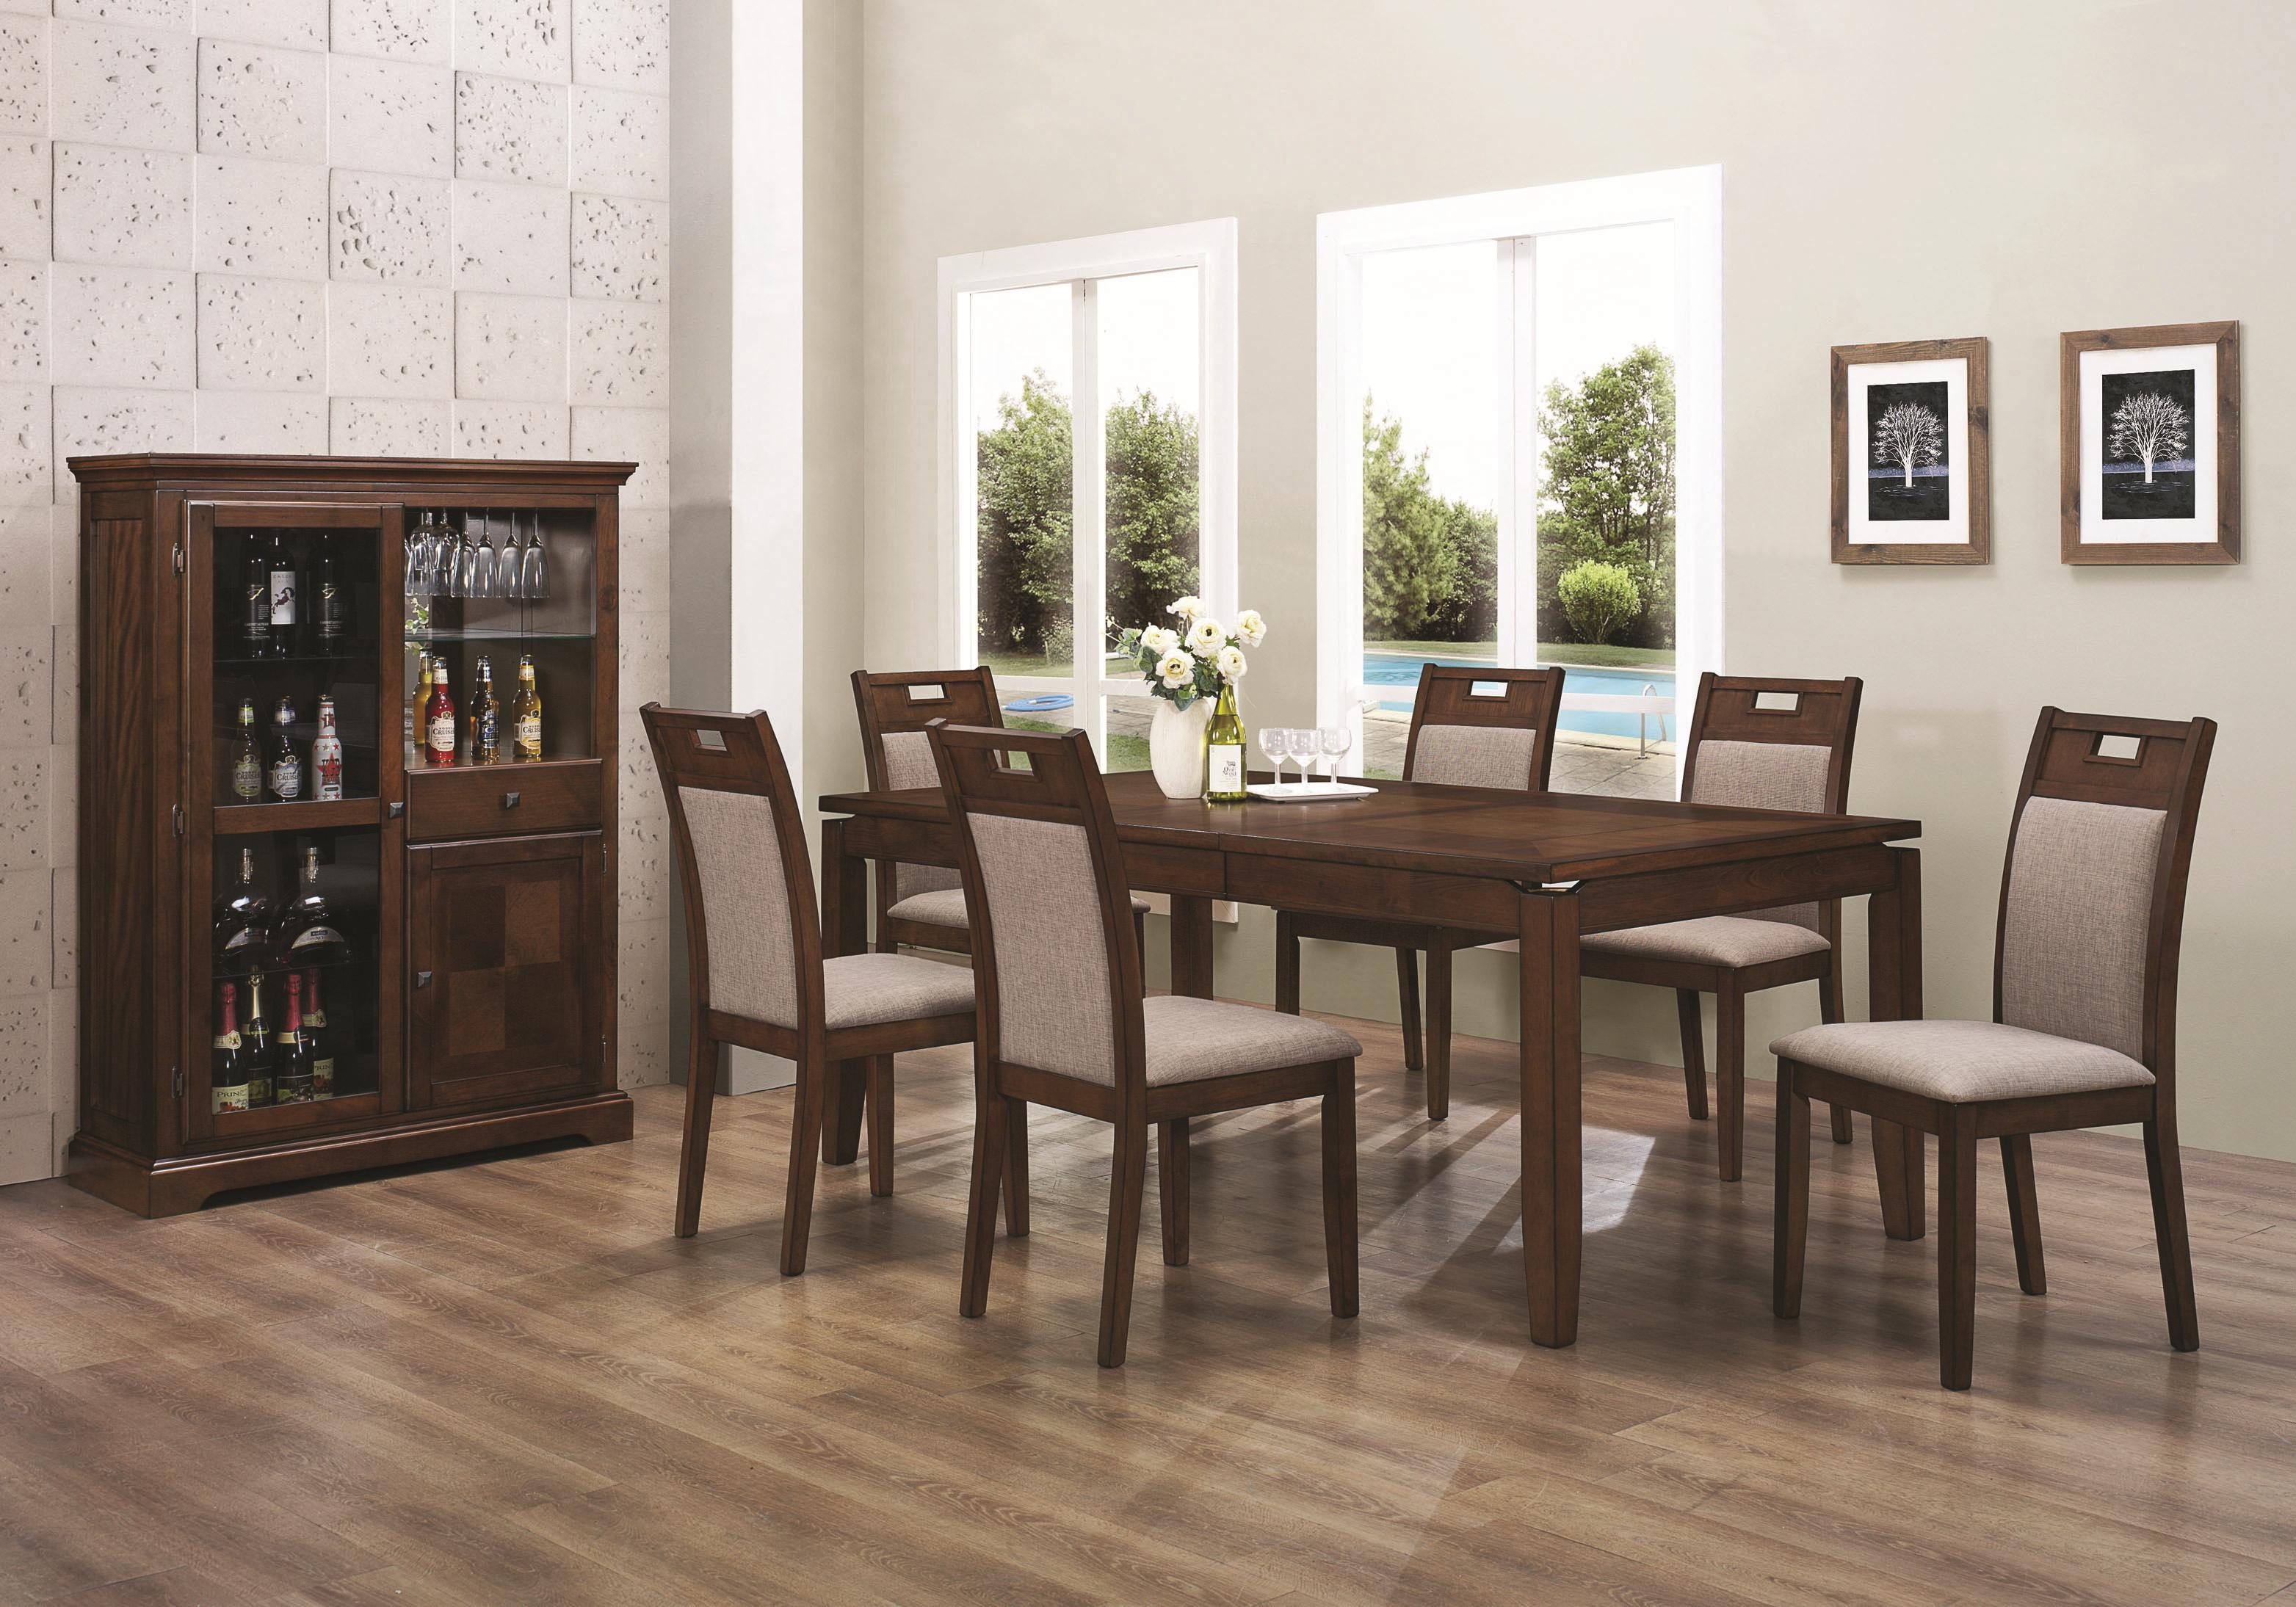 Simple Dining Table And Chairs (Image 6 of 10)